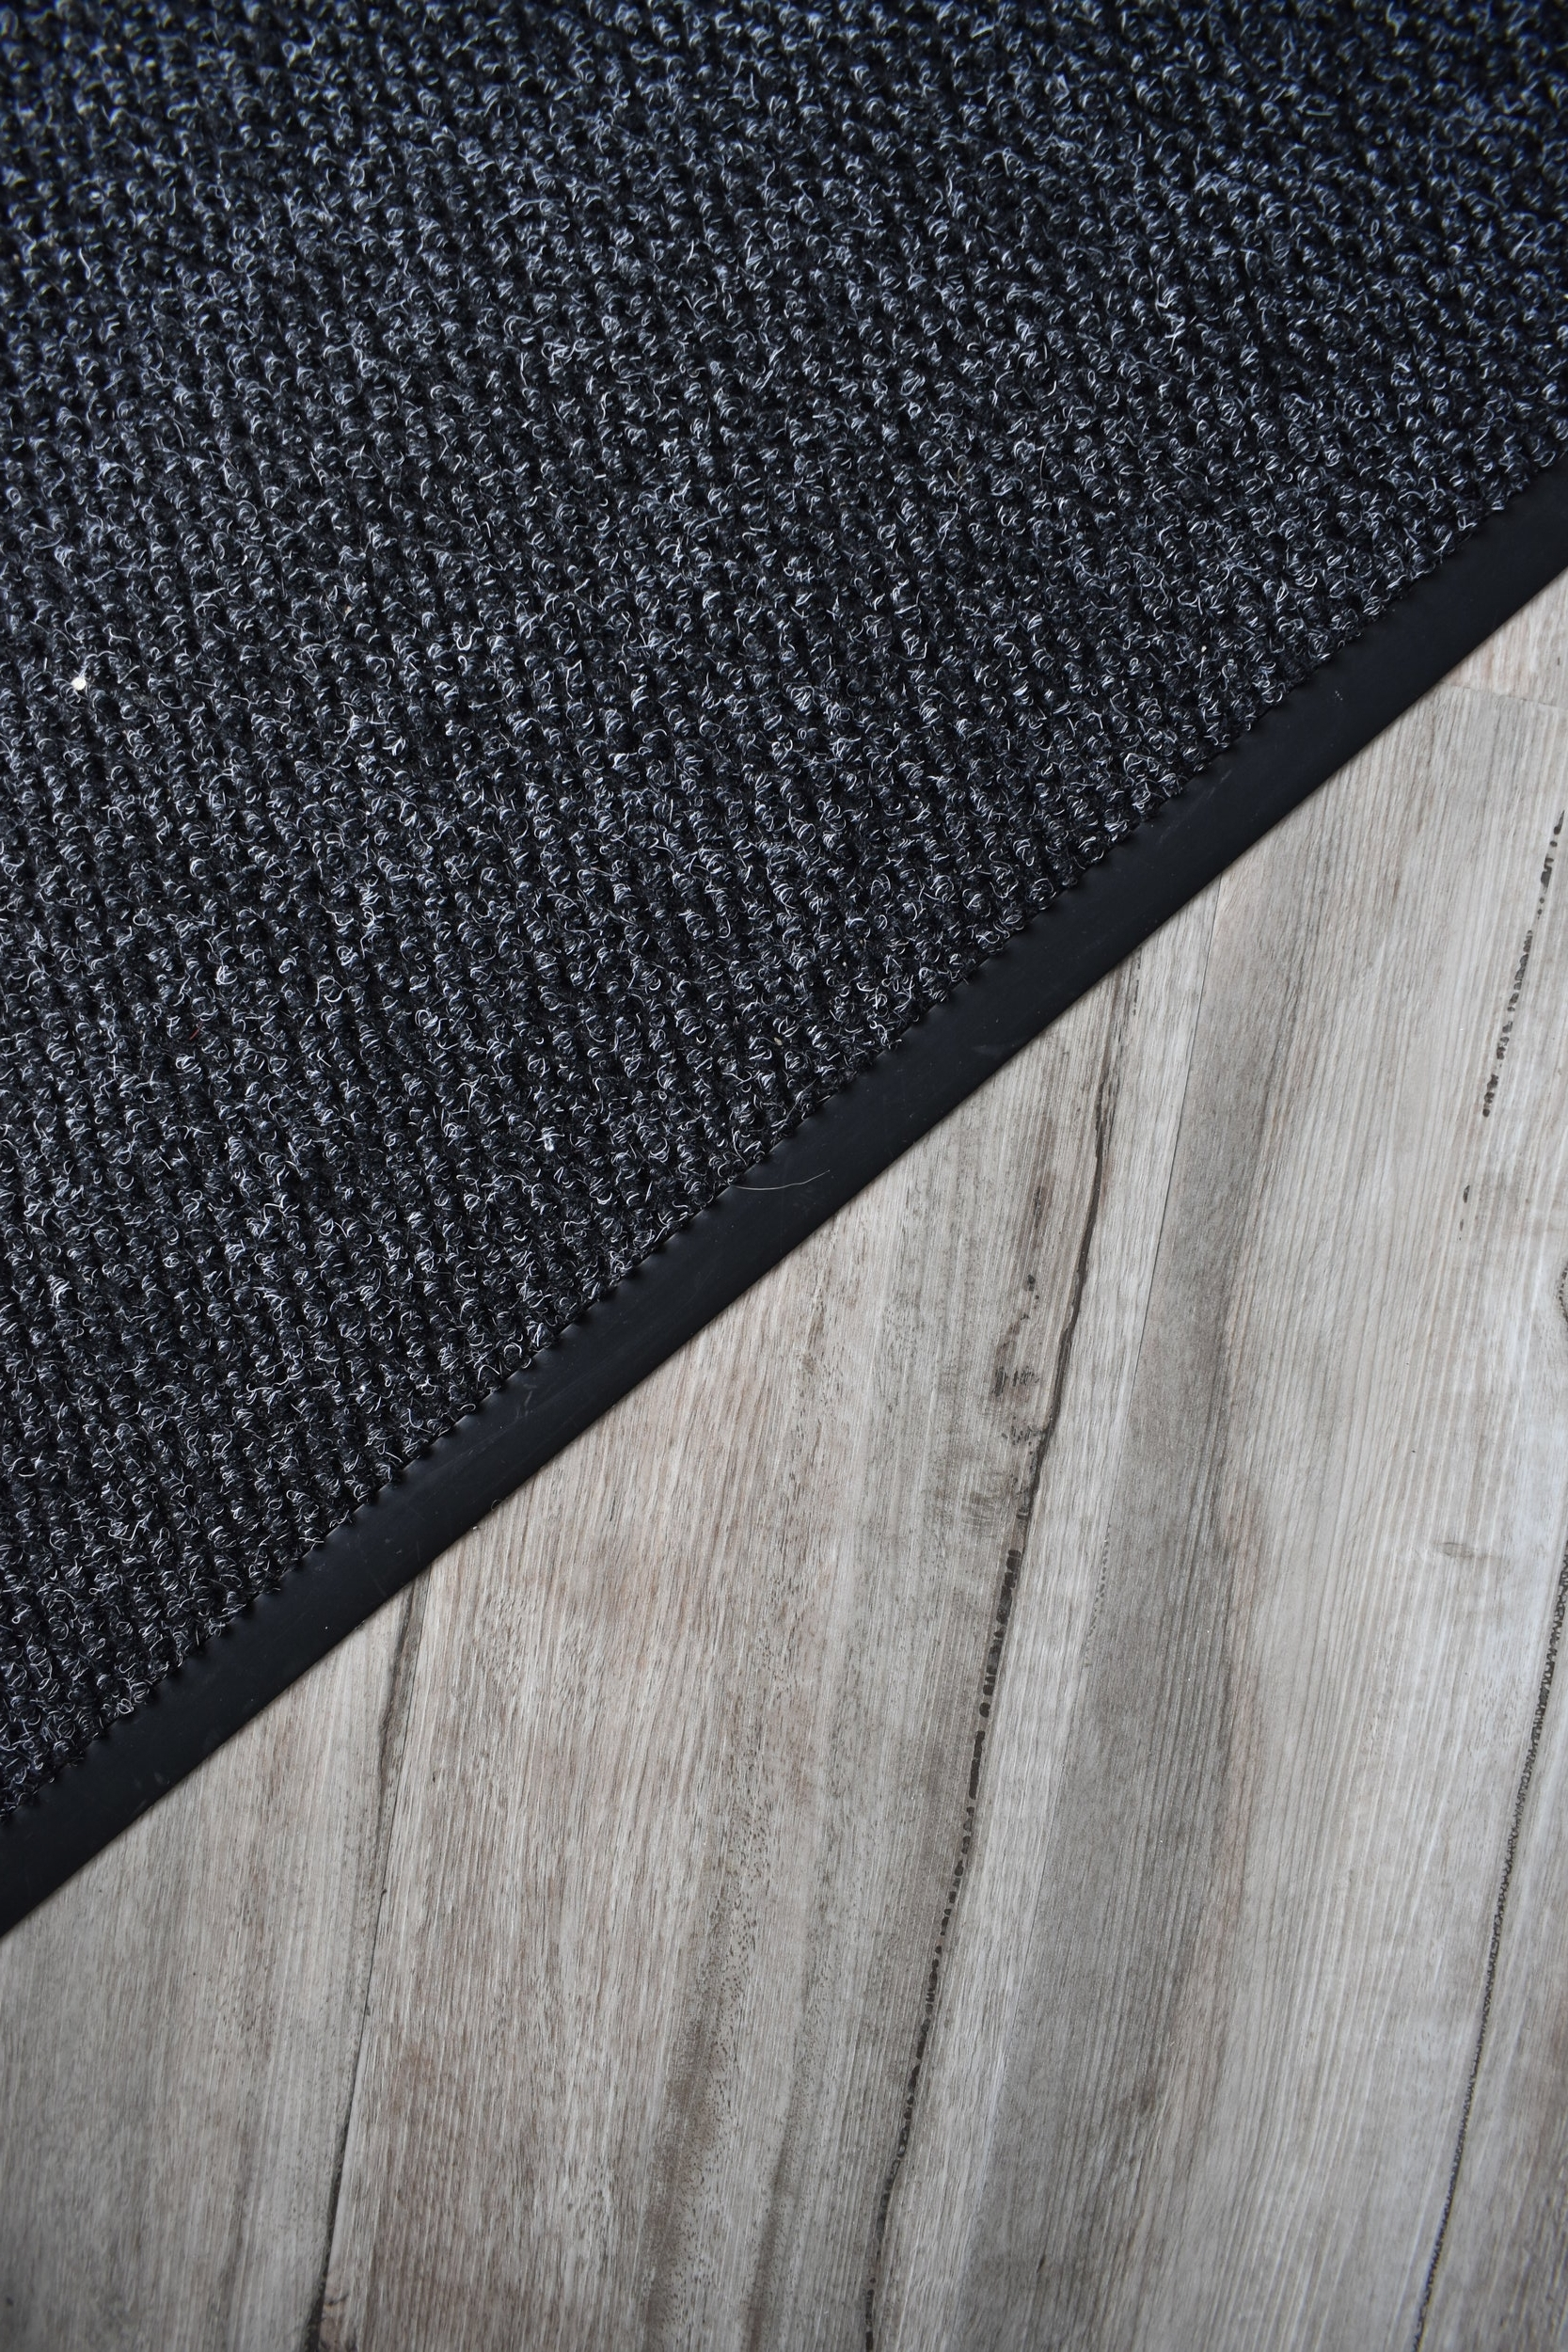 We installed a new beautiful charcoal safety matting at the entrances that sit flush with the wood plank vinyl. This gives a much tidier appearance than a loose matting which can be a trip hazard.